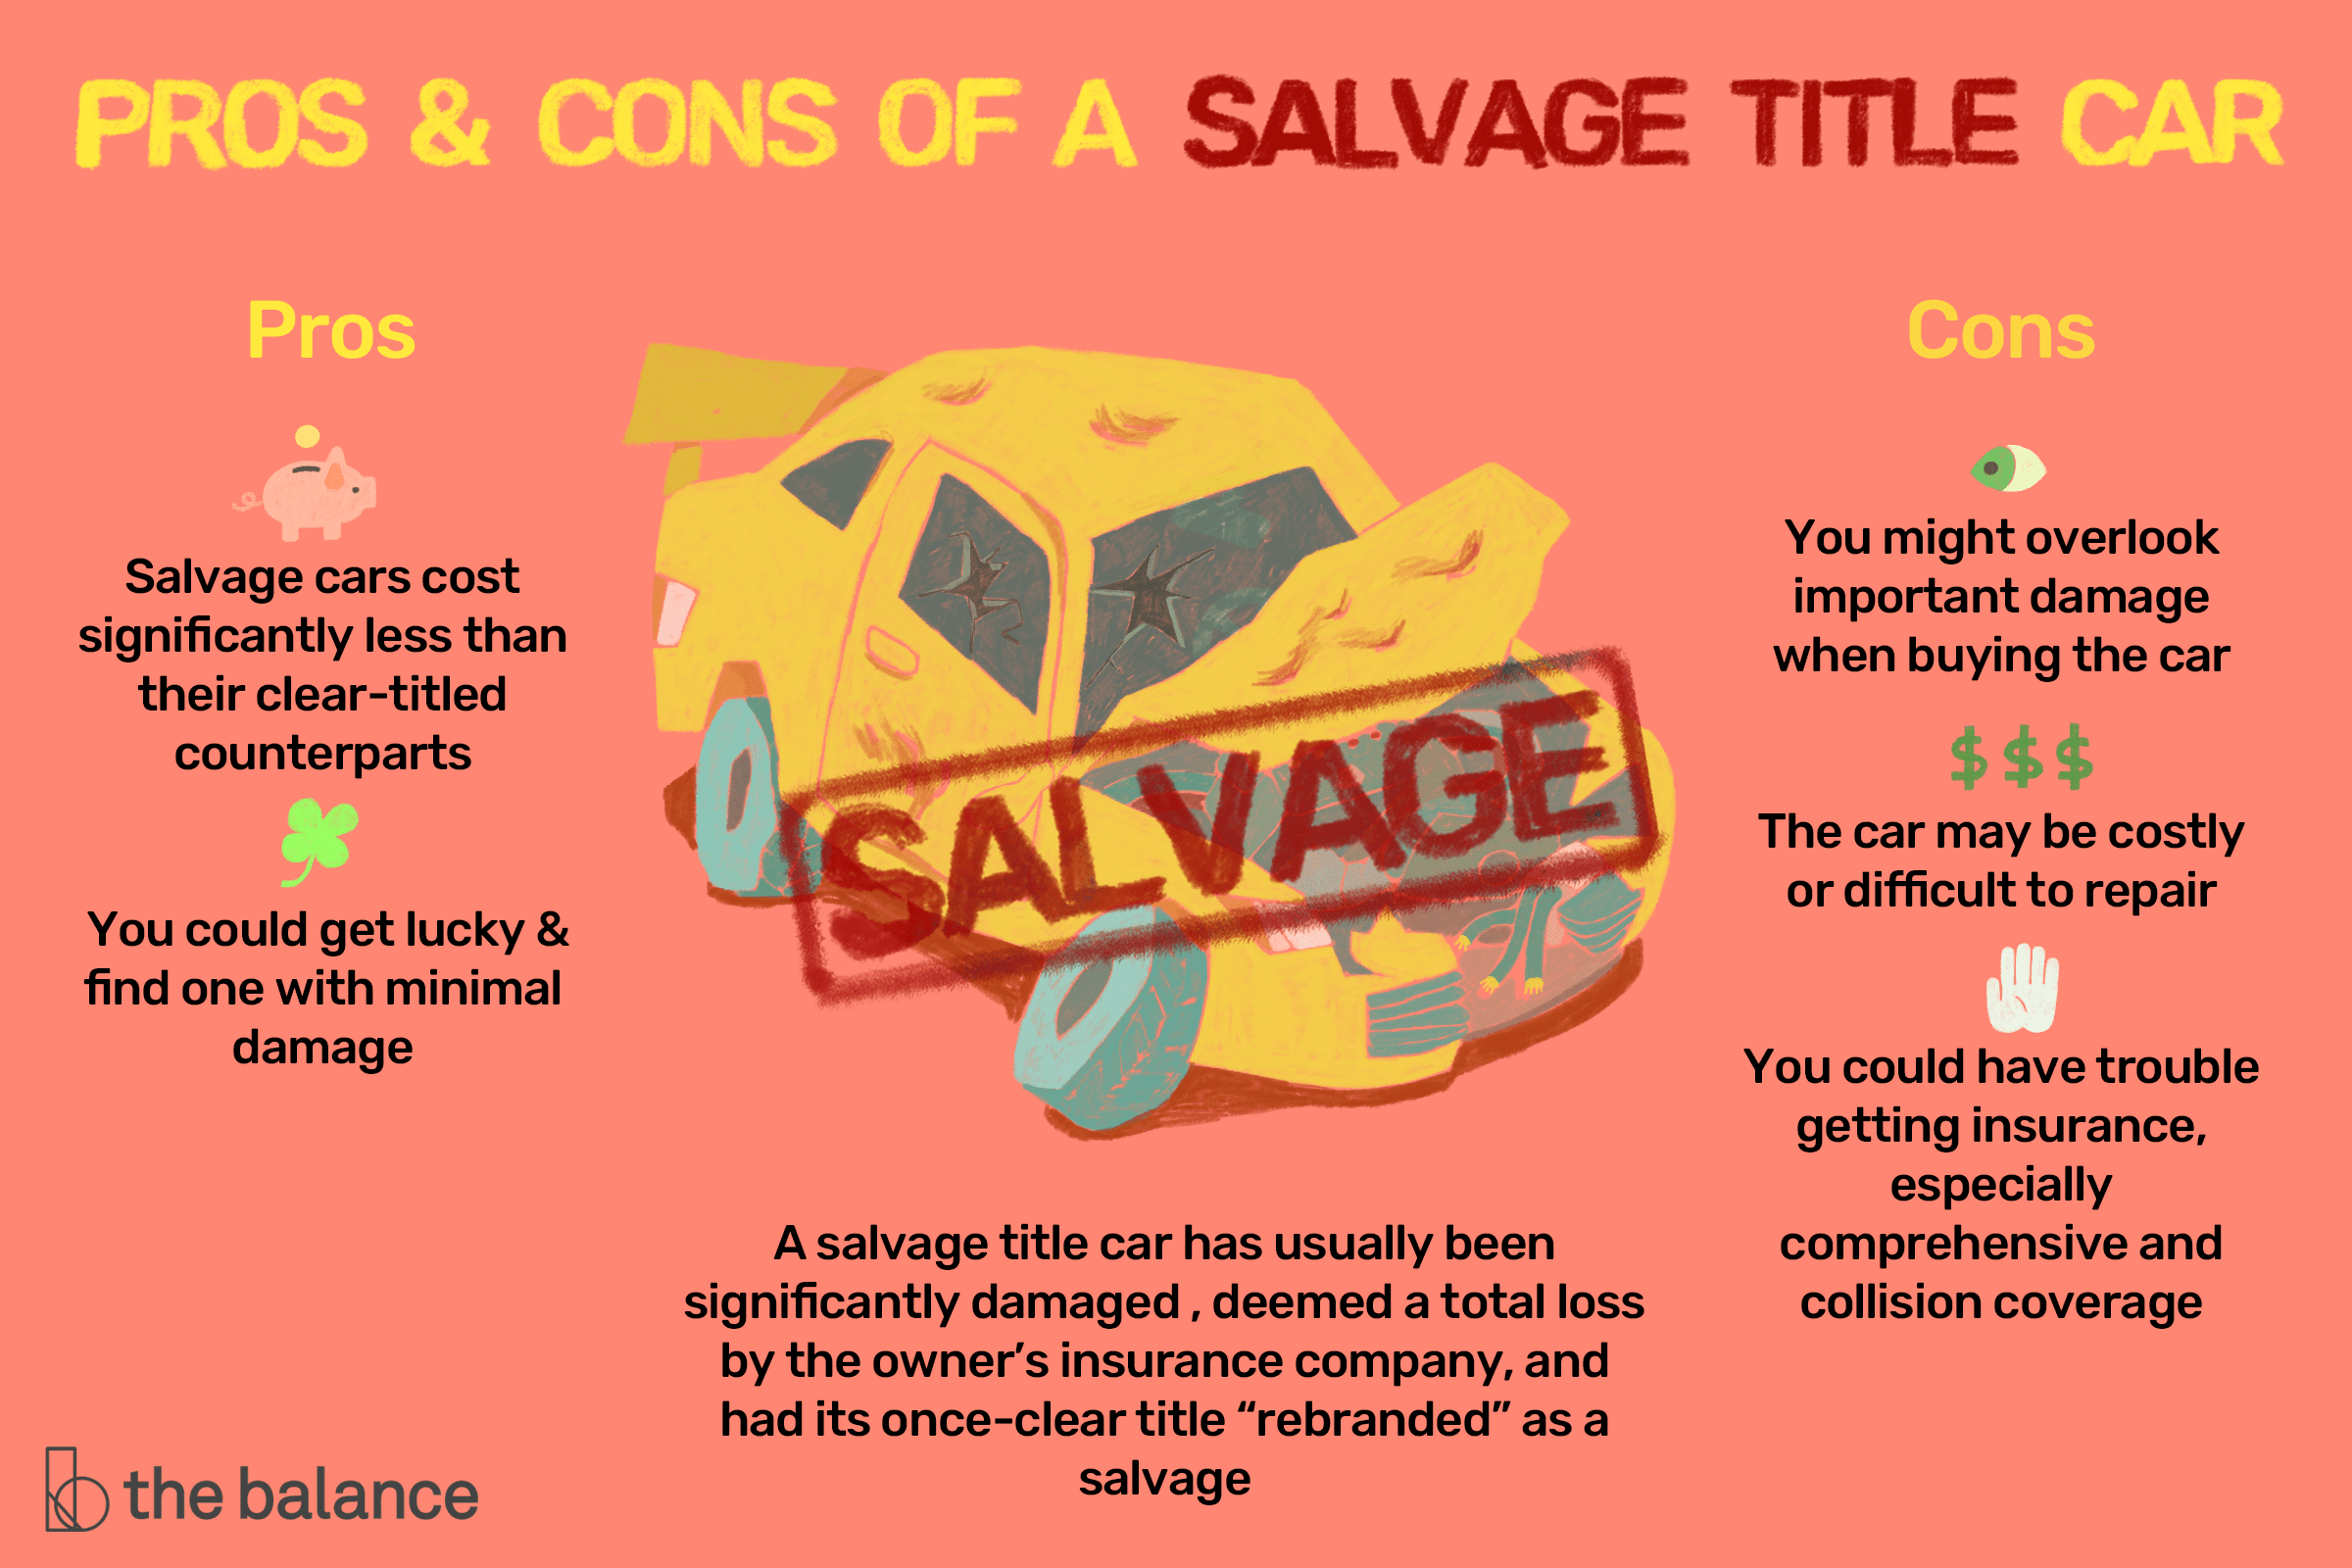 Pros and Cons of a Salvage Title Car